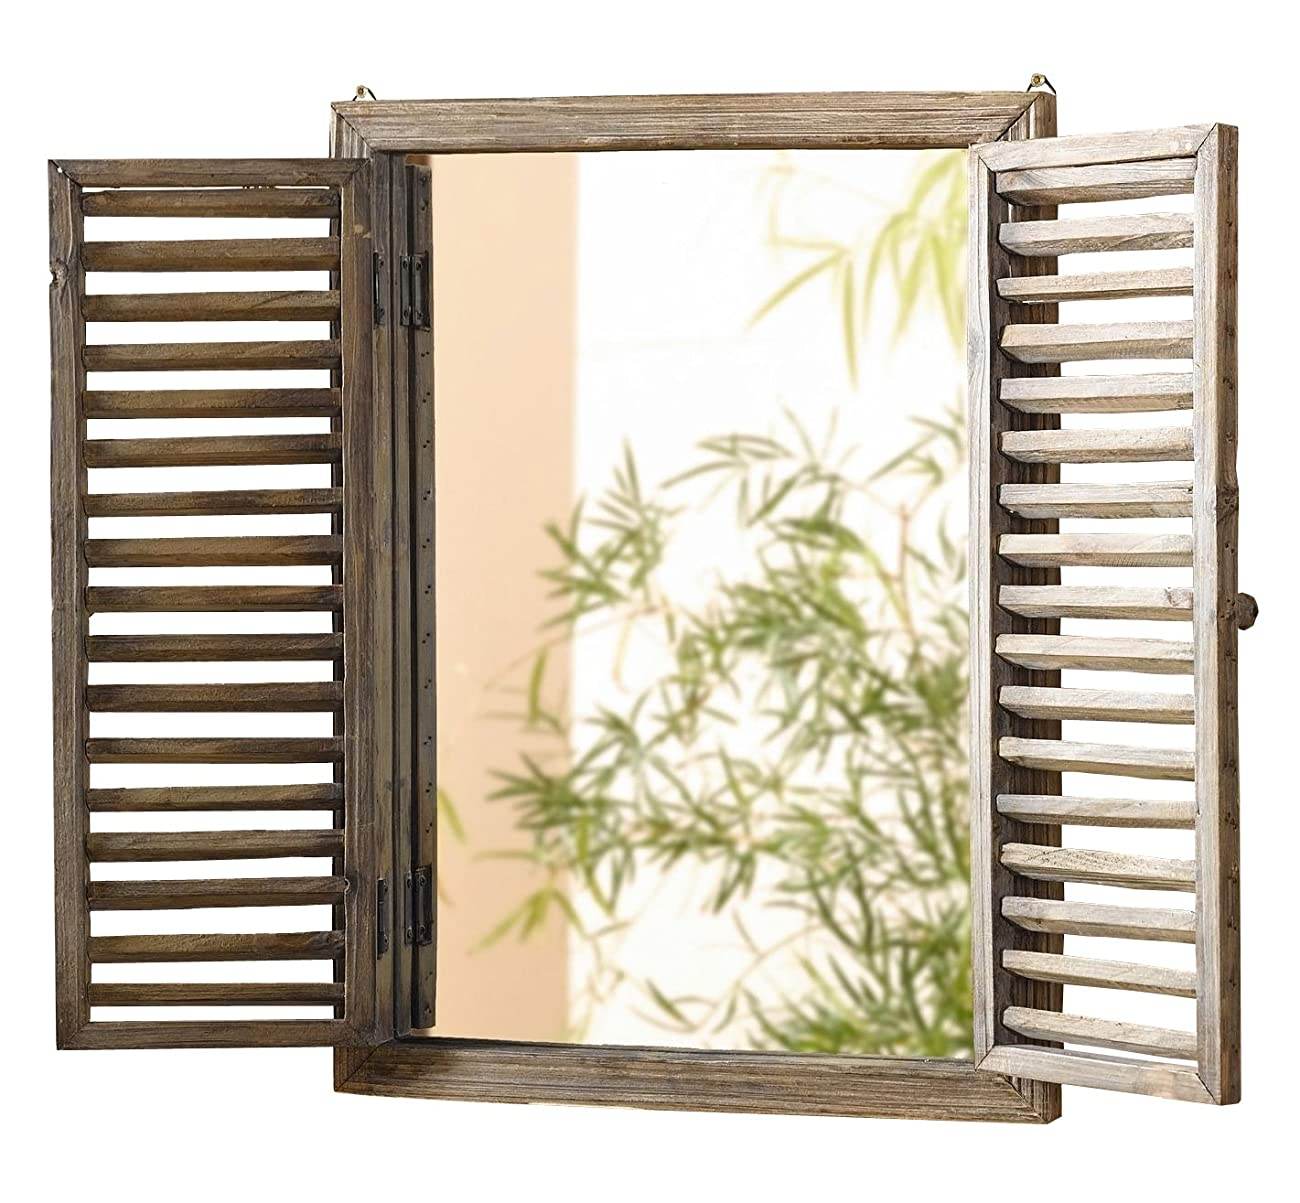 Shuttered Mirror with Frame - Rustic Mirror with Wooden Frame and Shutter Design Product SKU: HD223944 0